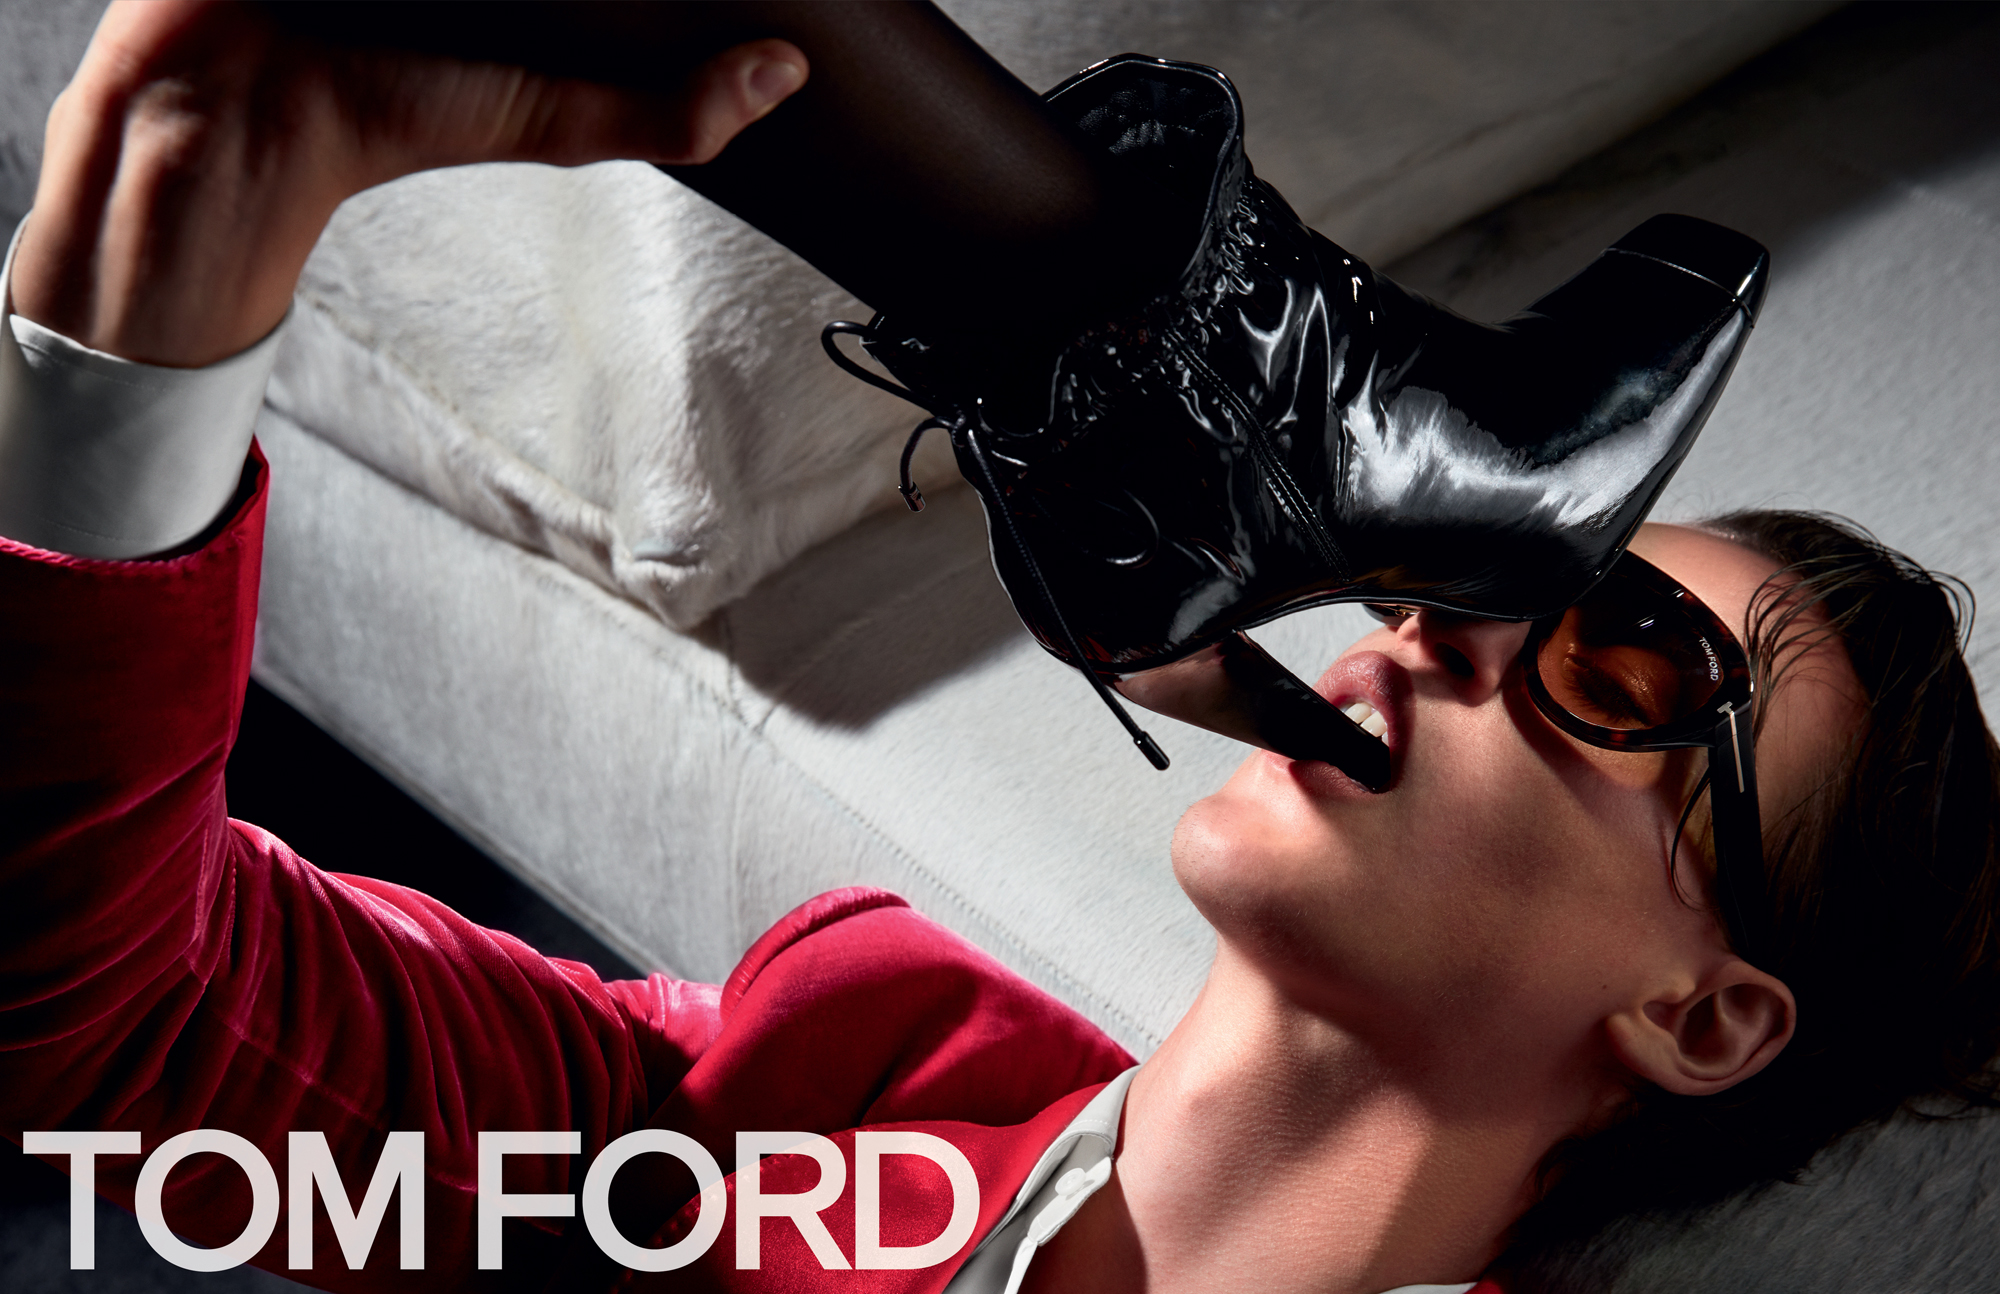 Tom-Ford-fall-2017-ad-campaign-the-impression-006